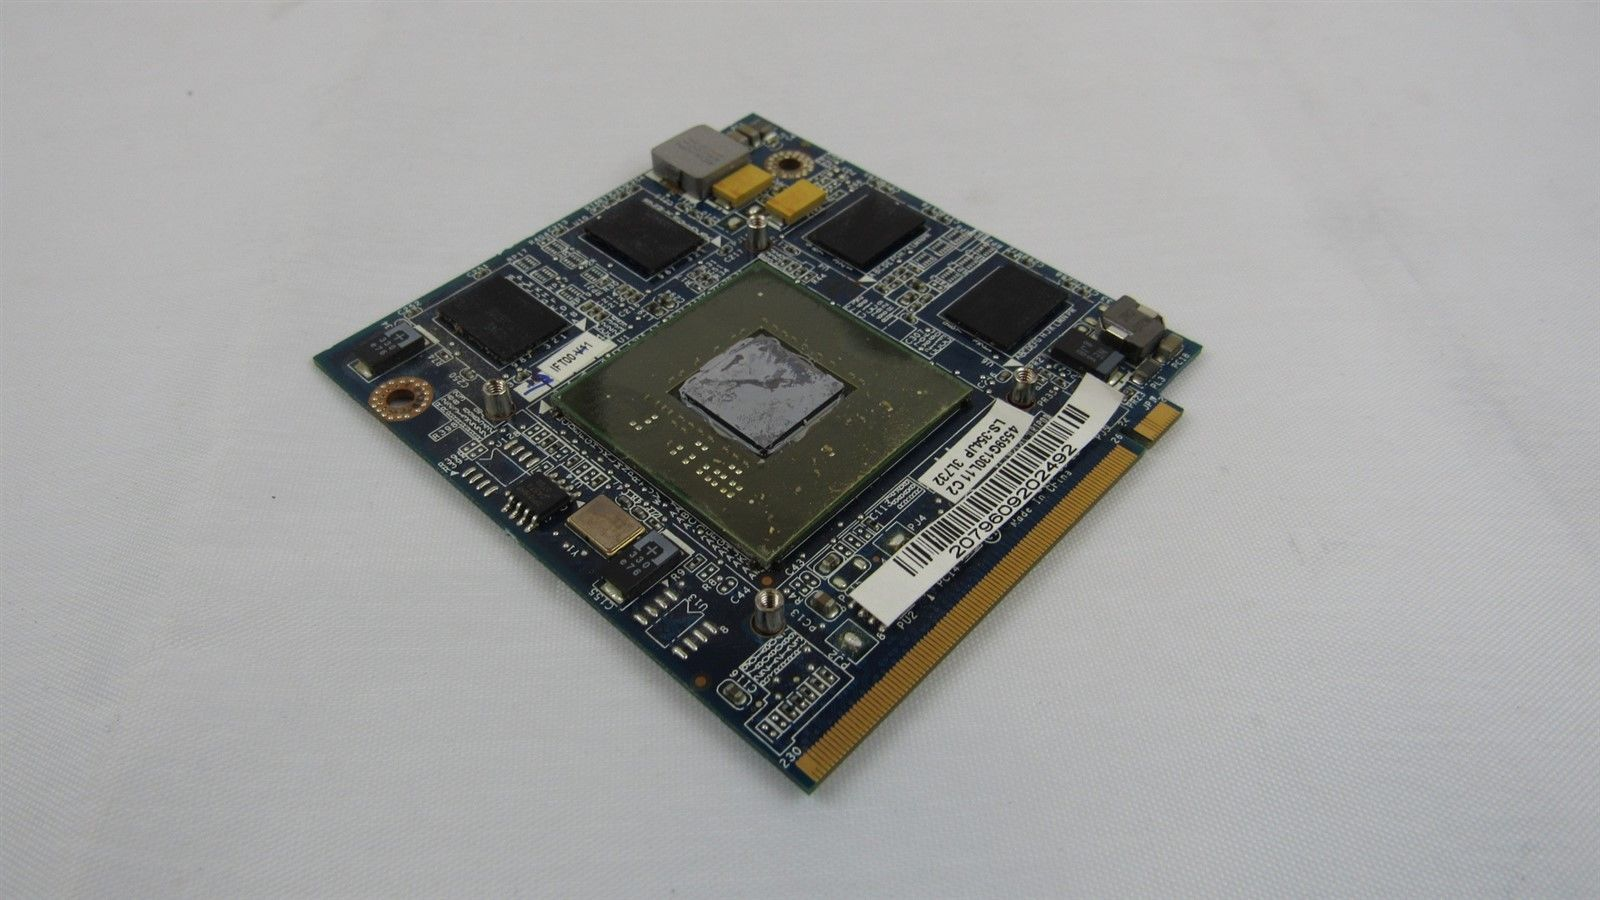 Compal Sager FL90 FL92 FT02 nVidia GeForce 8600M 512MB Video Card LS-354JP